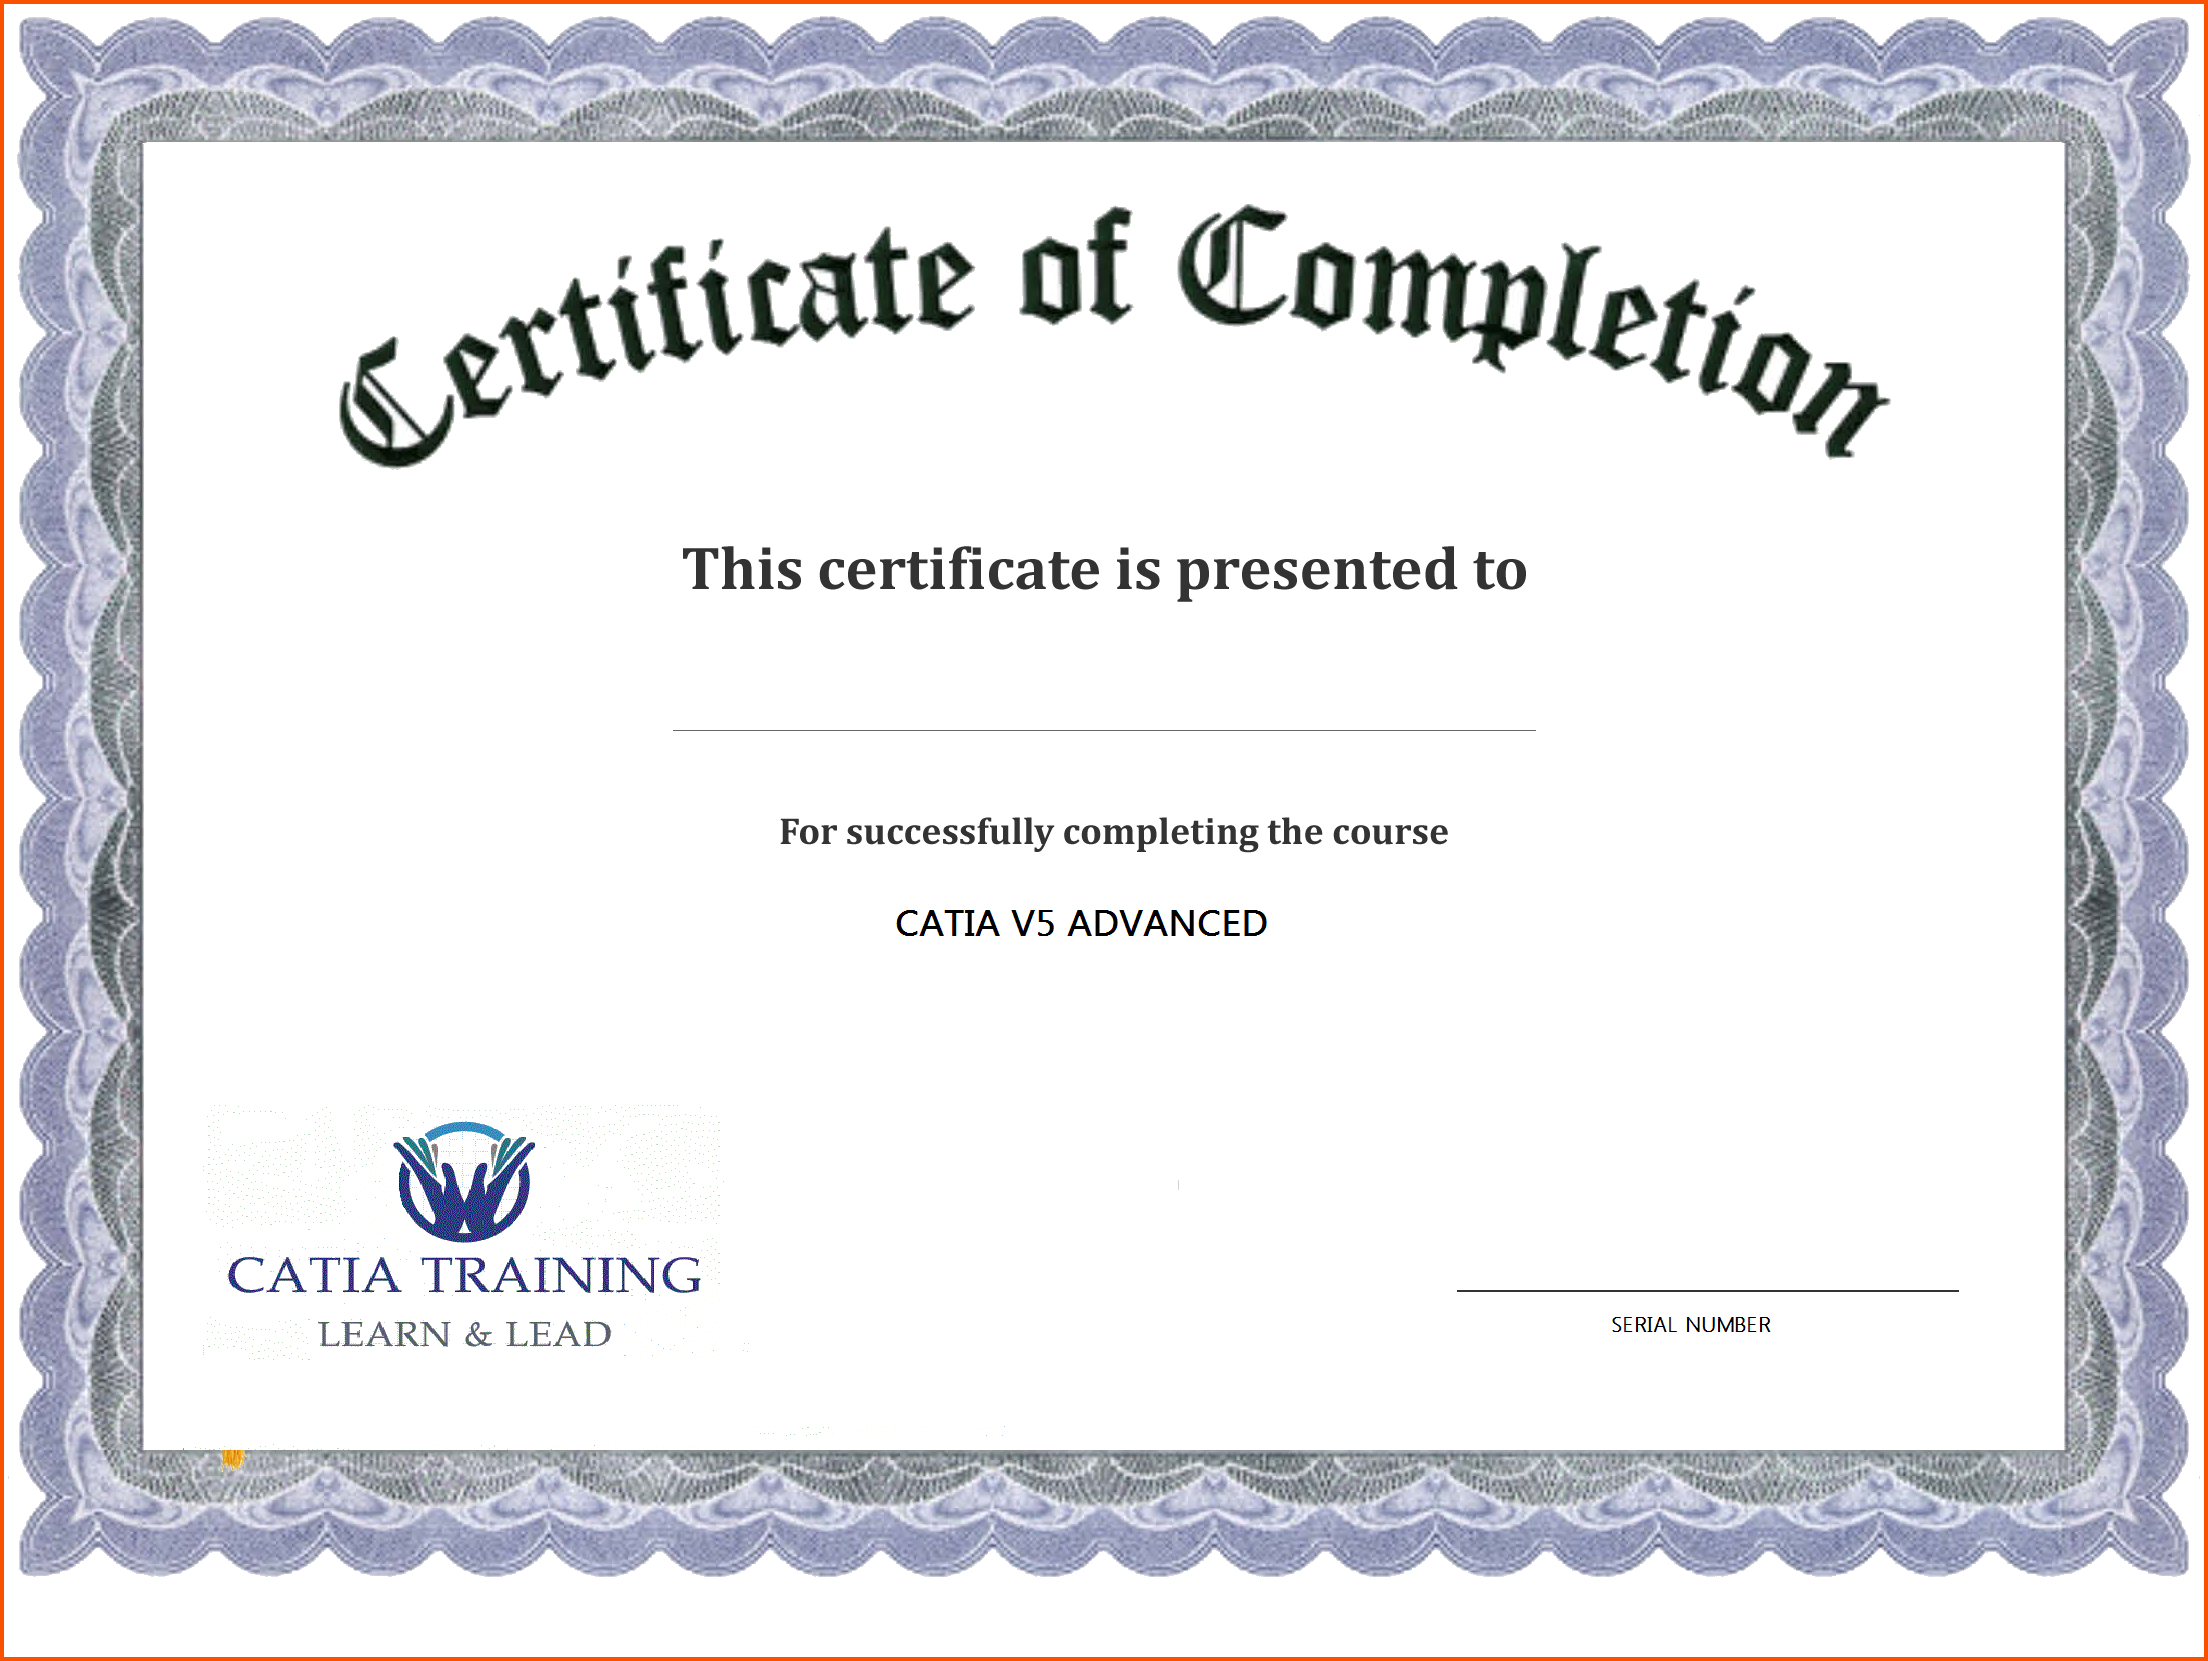 It is an image of Free Printable Certificate of Achievement pertaining to employment